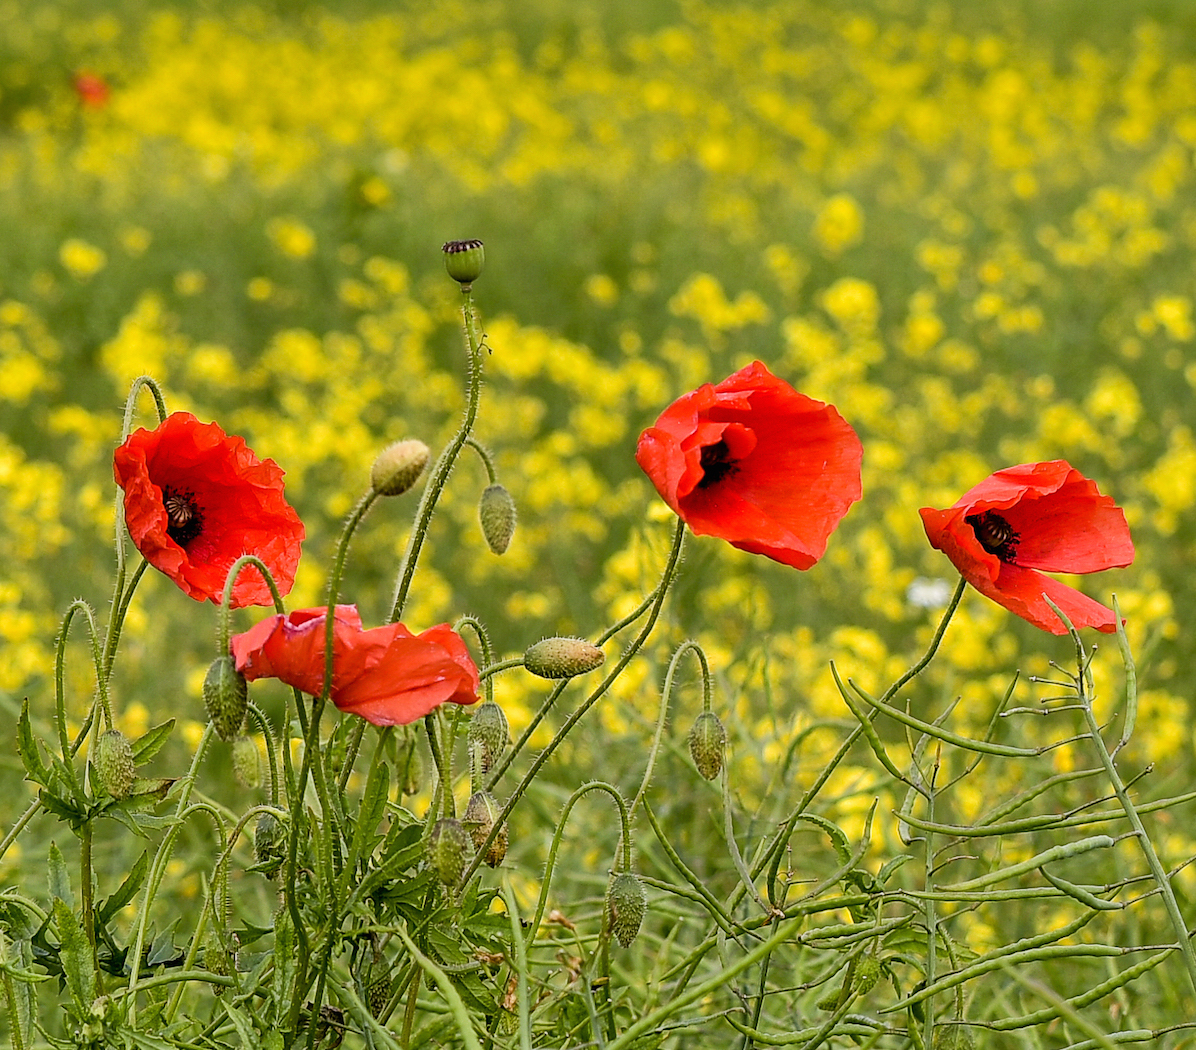 The chalkland seems ideal for poppies